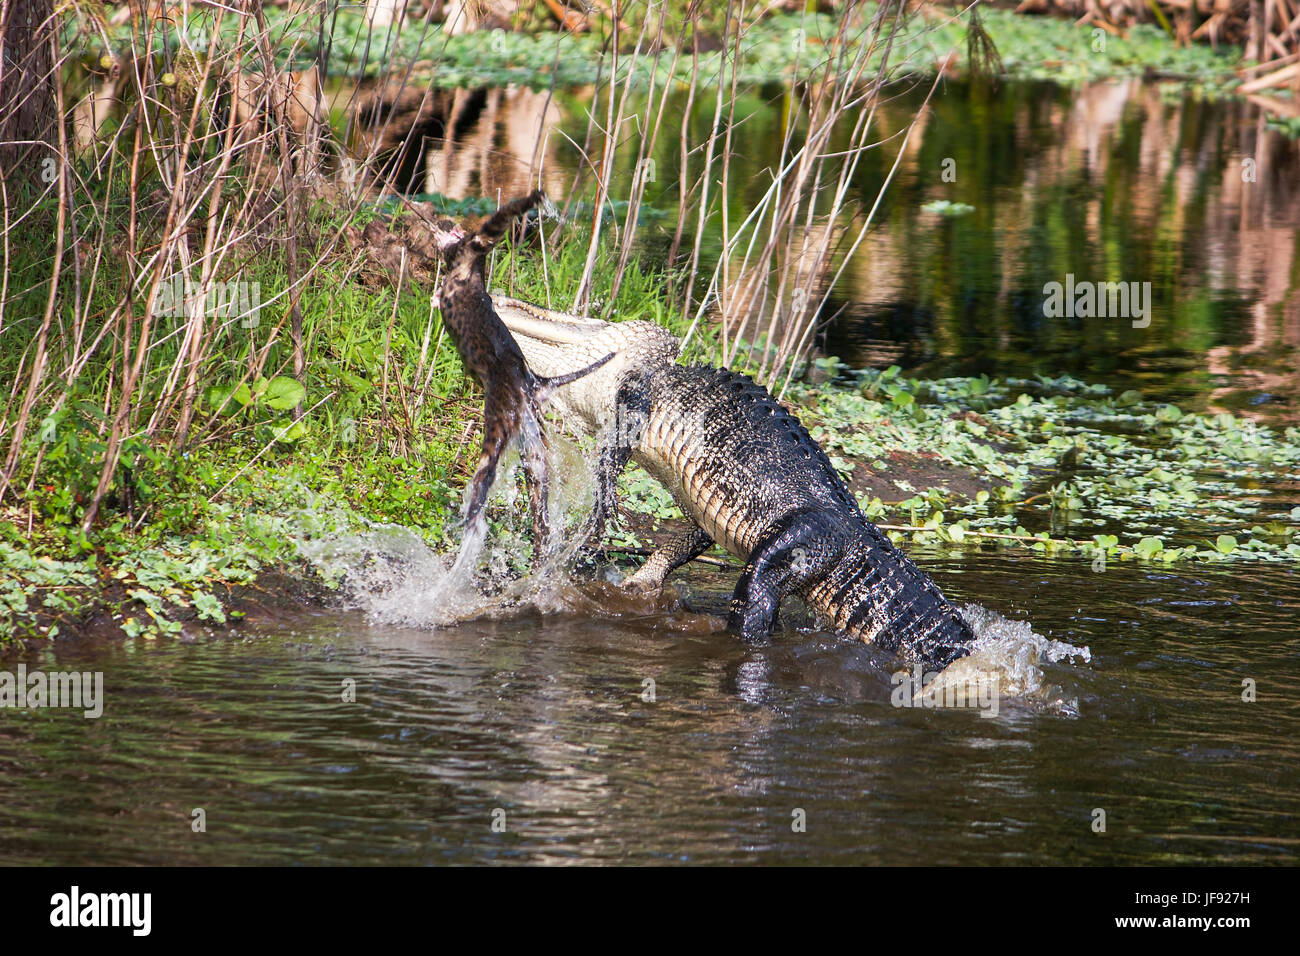 The first in a series of 4 images of an alligator attacking and eating a bobcat in the Florida Everglades. This - Stock Image